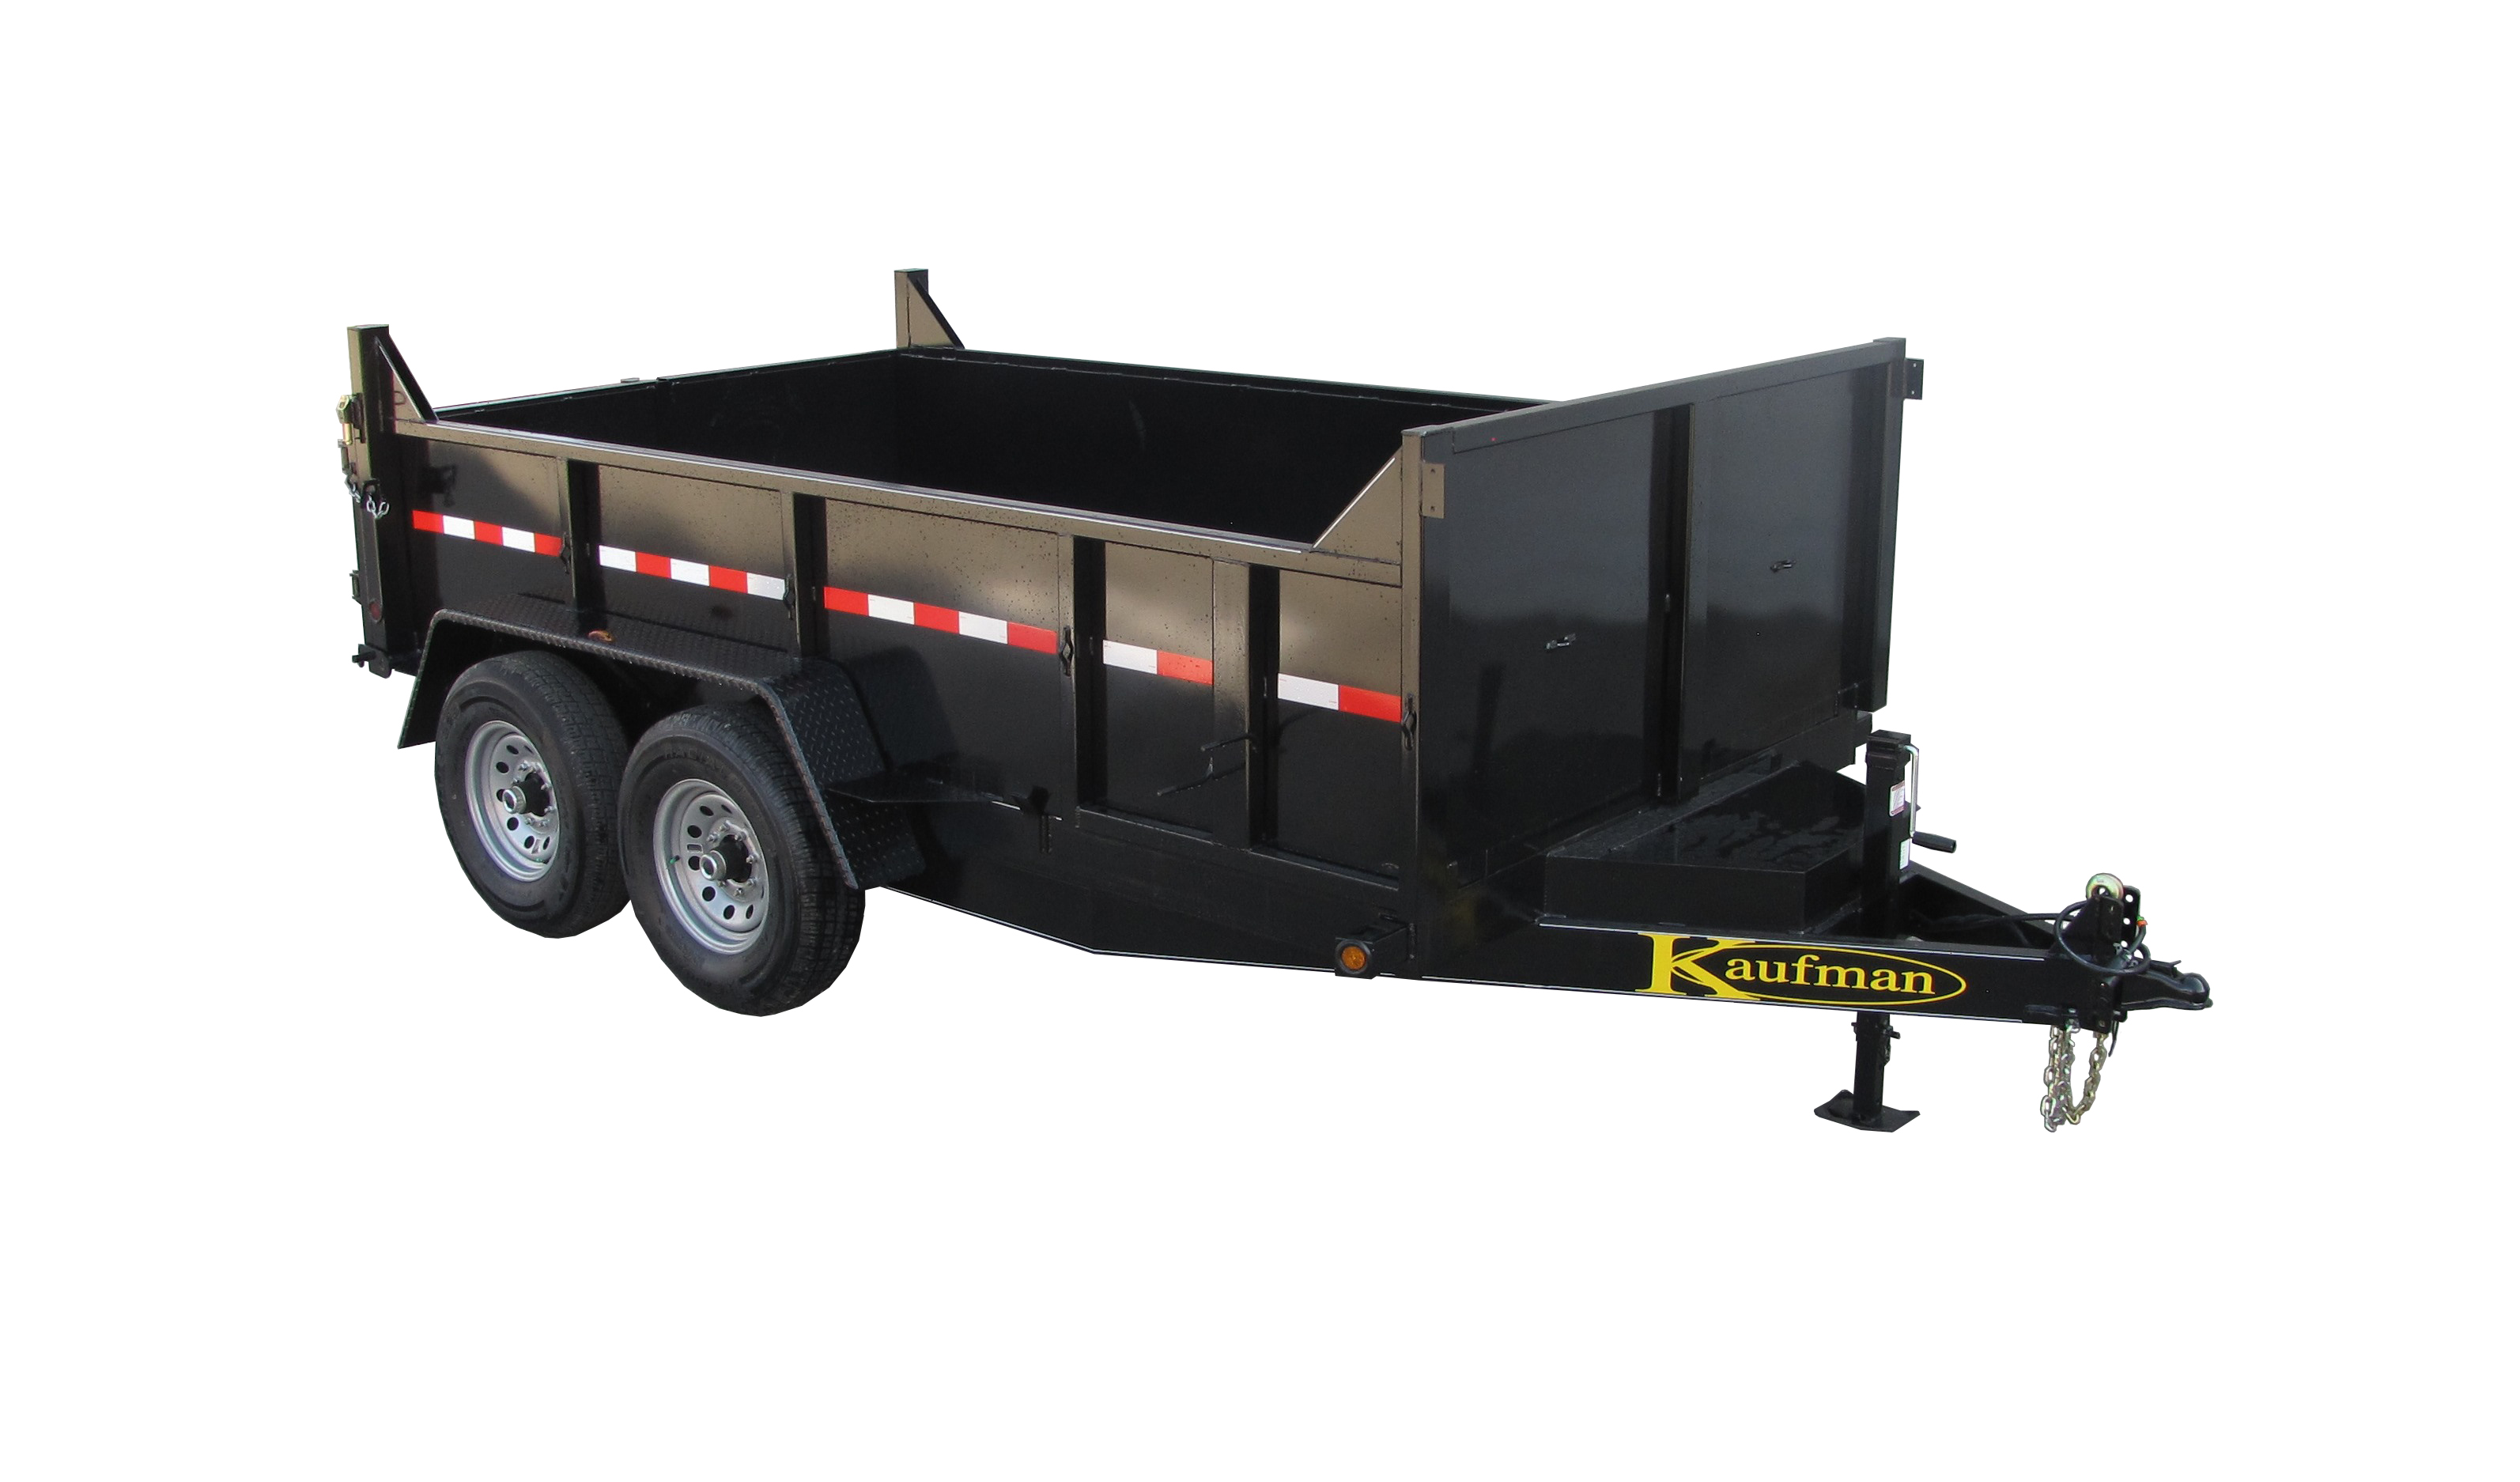 12000 GVWR Deluxe Dump Trailer deluxe medium duty dump trailer for sale by kaufman trailers! 4 Prong Trailer Wiring Diagram at bayanpartner.co